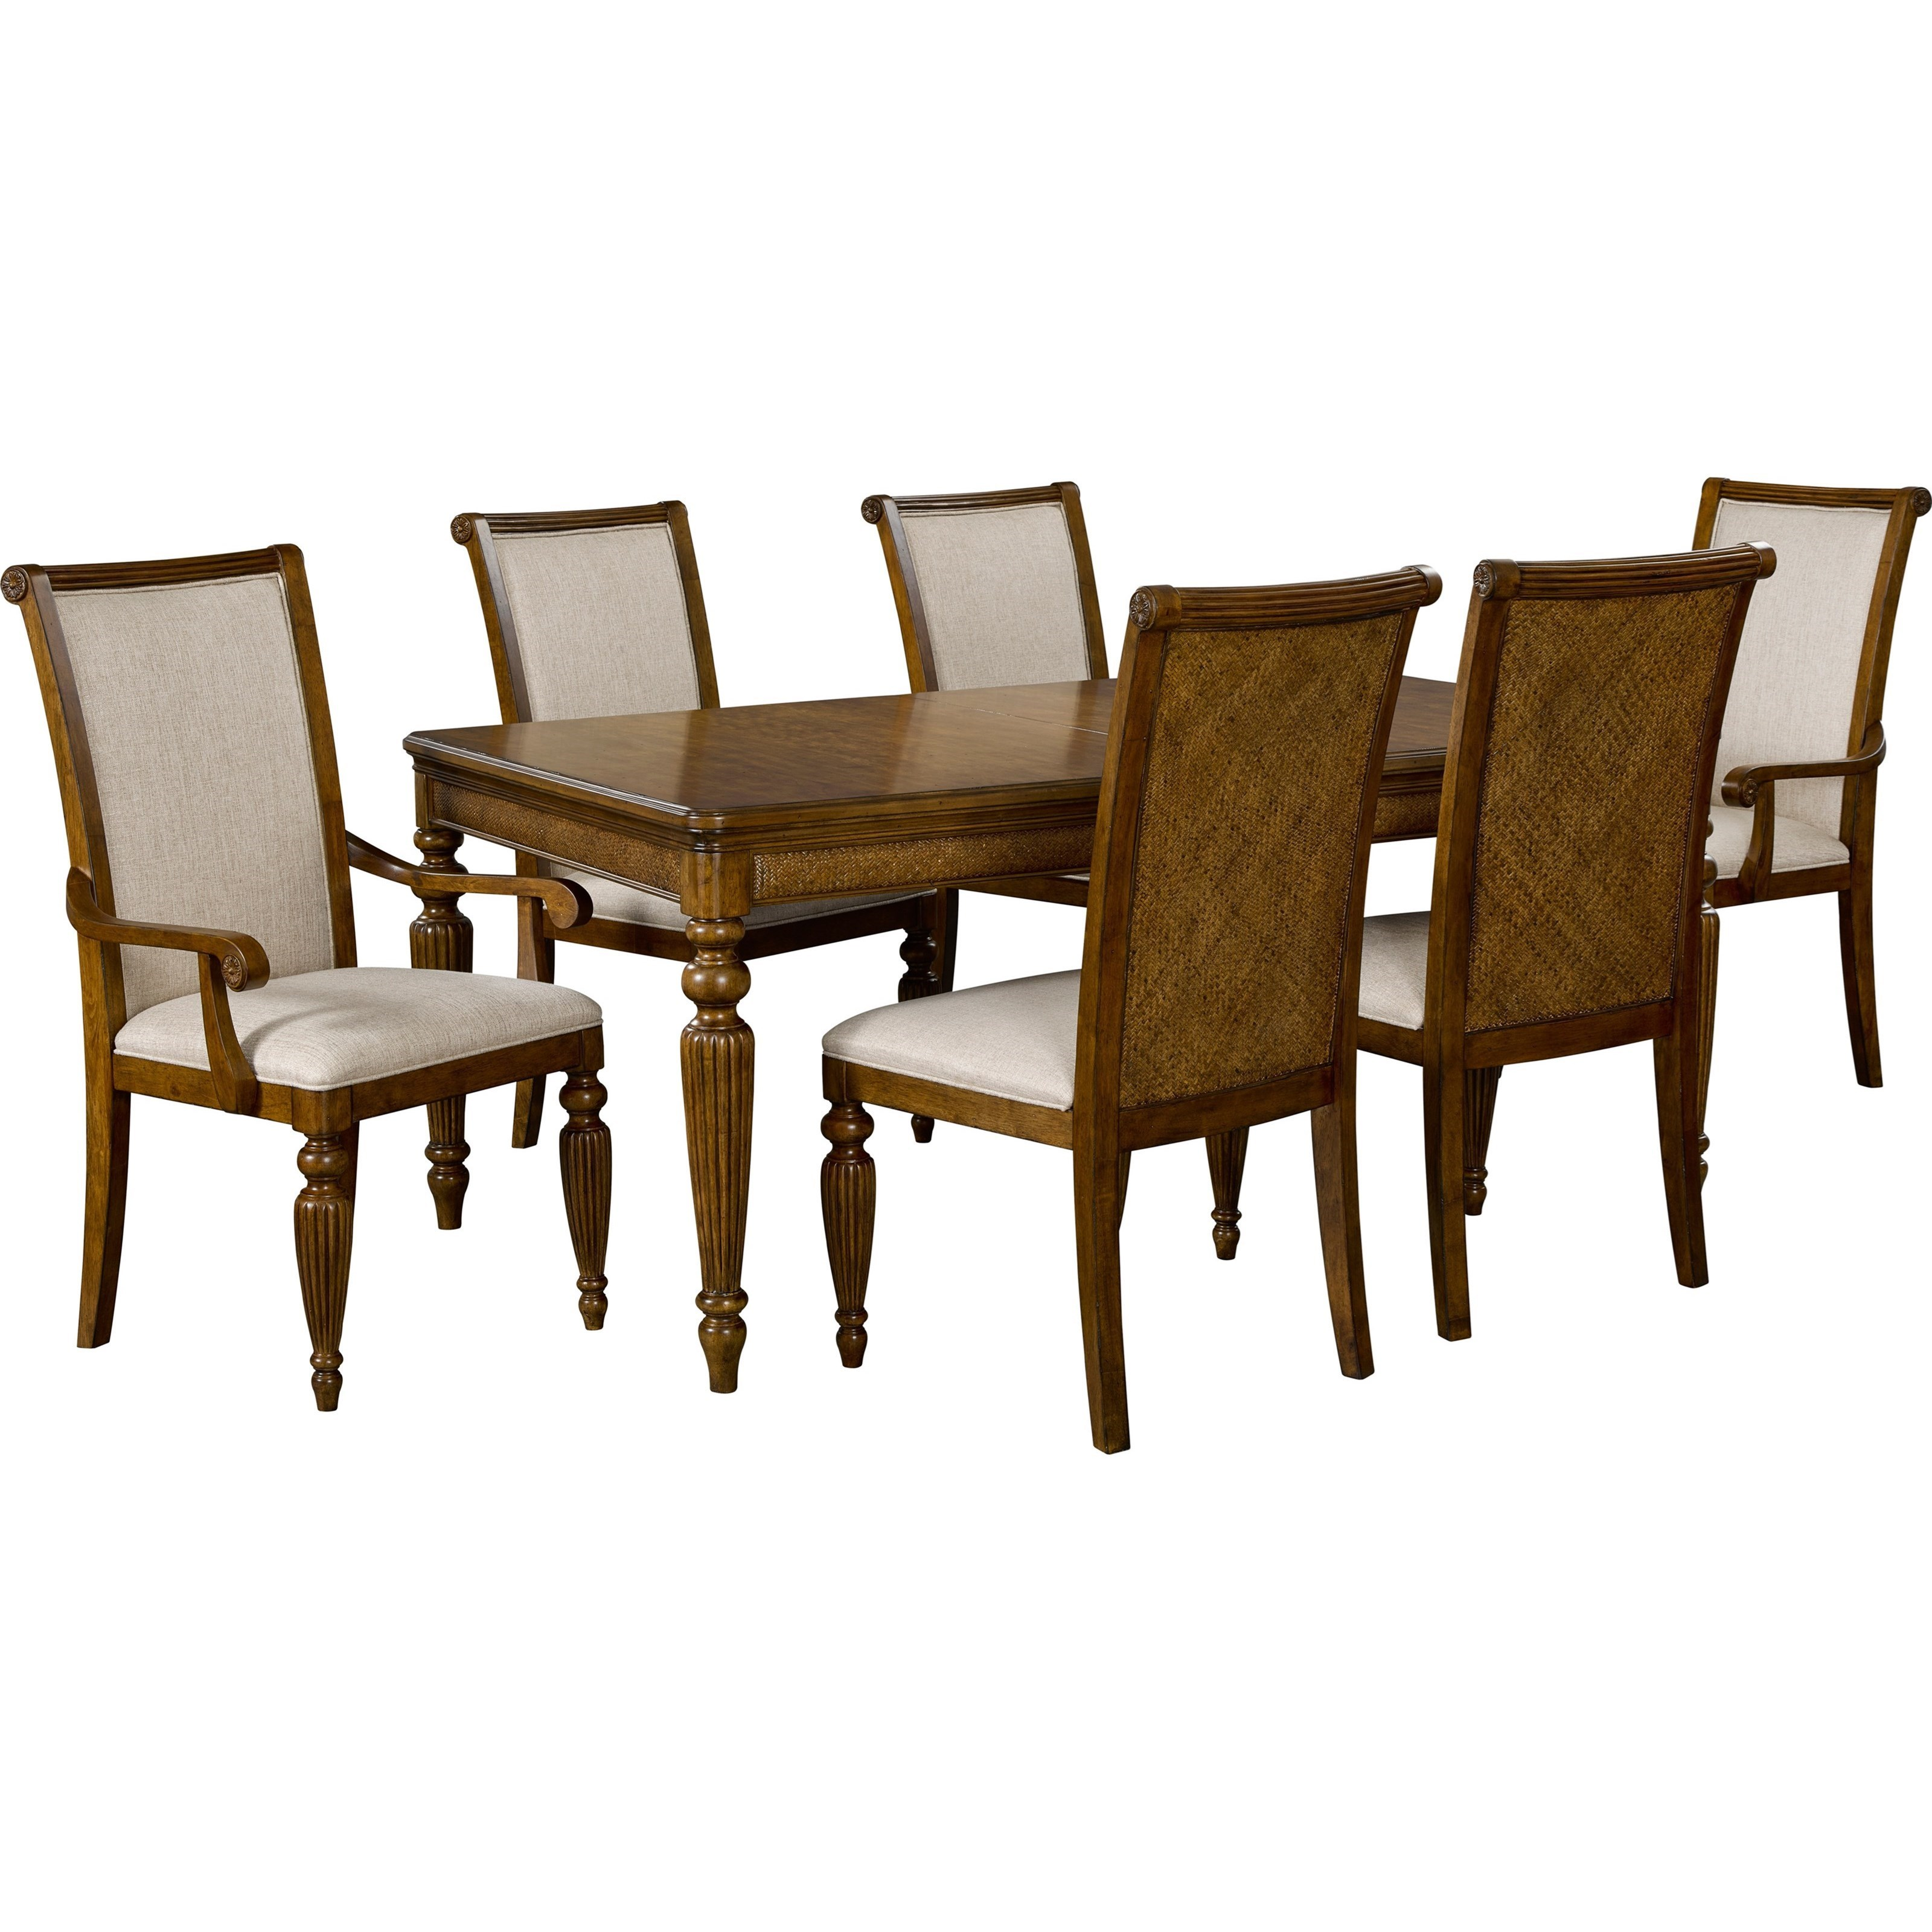 Broyhill Furniture Amalie Bay7 Piece Table And Chair Set ...